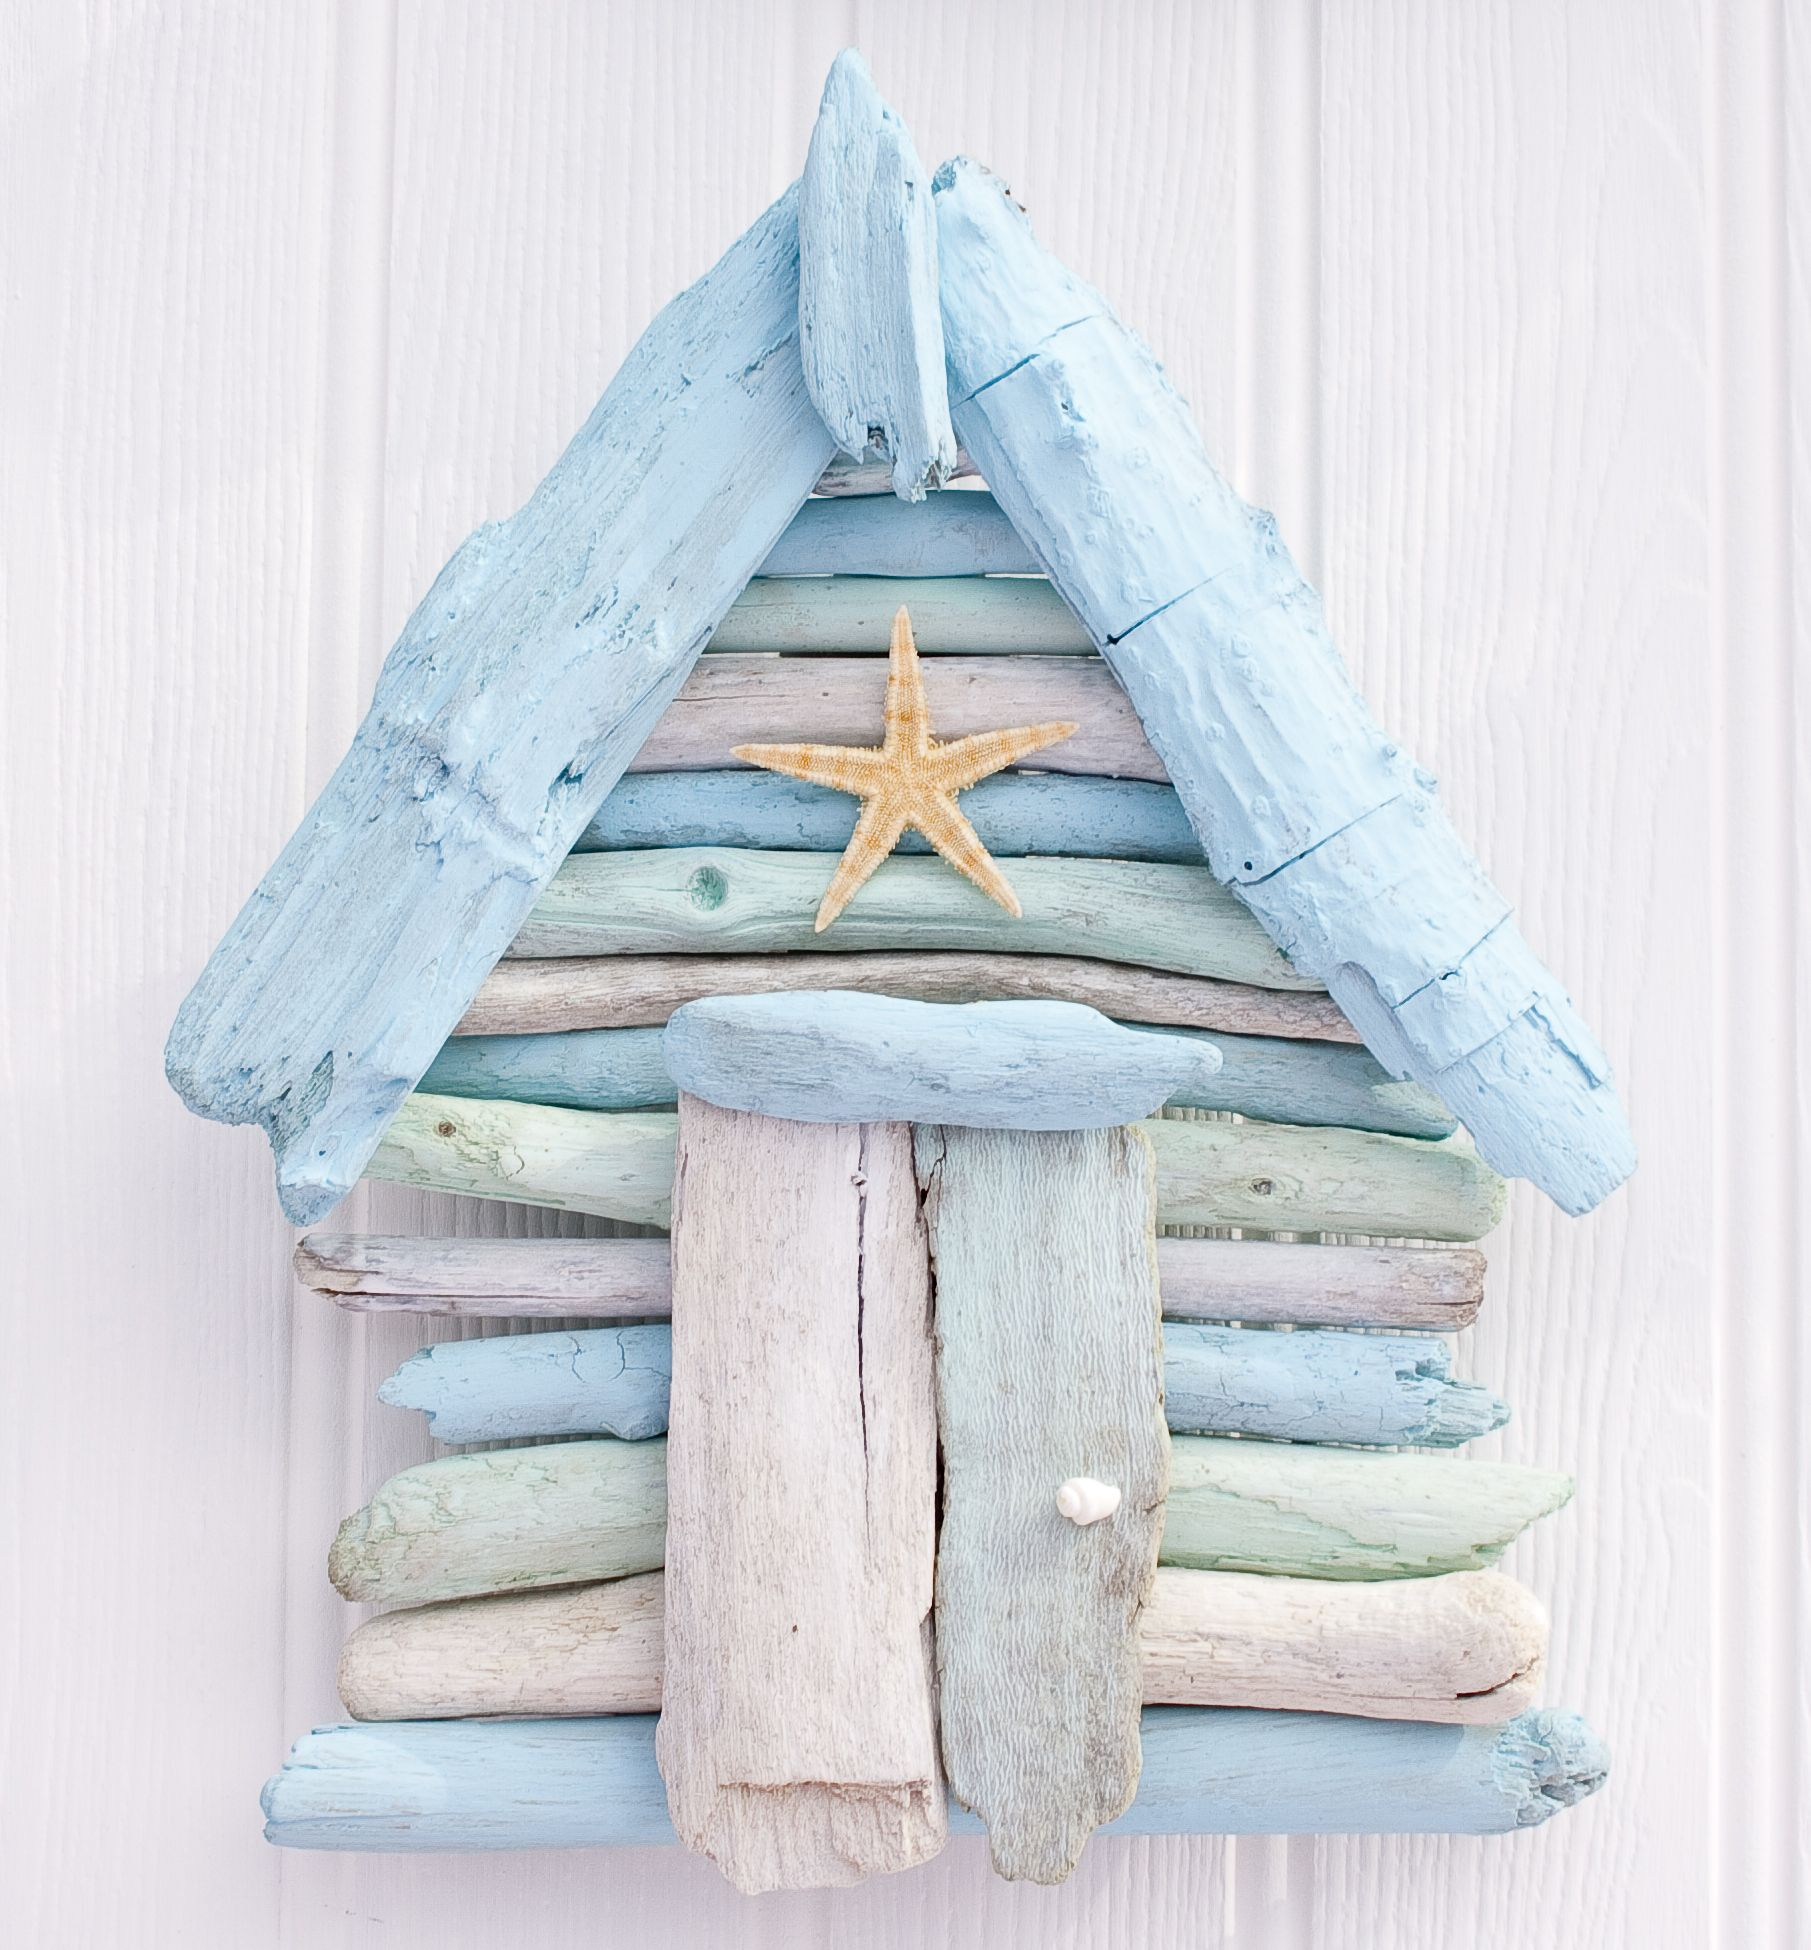 www coastalhome co uk is a lovely online shop which sells a huge